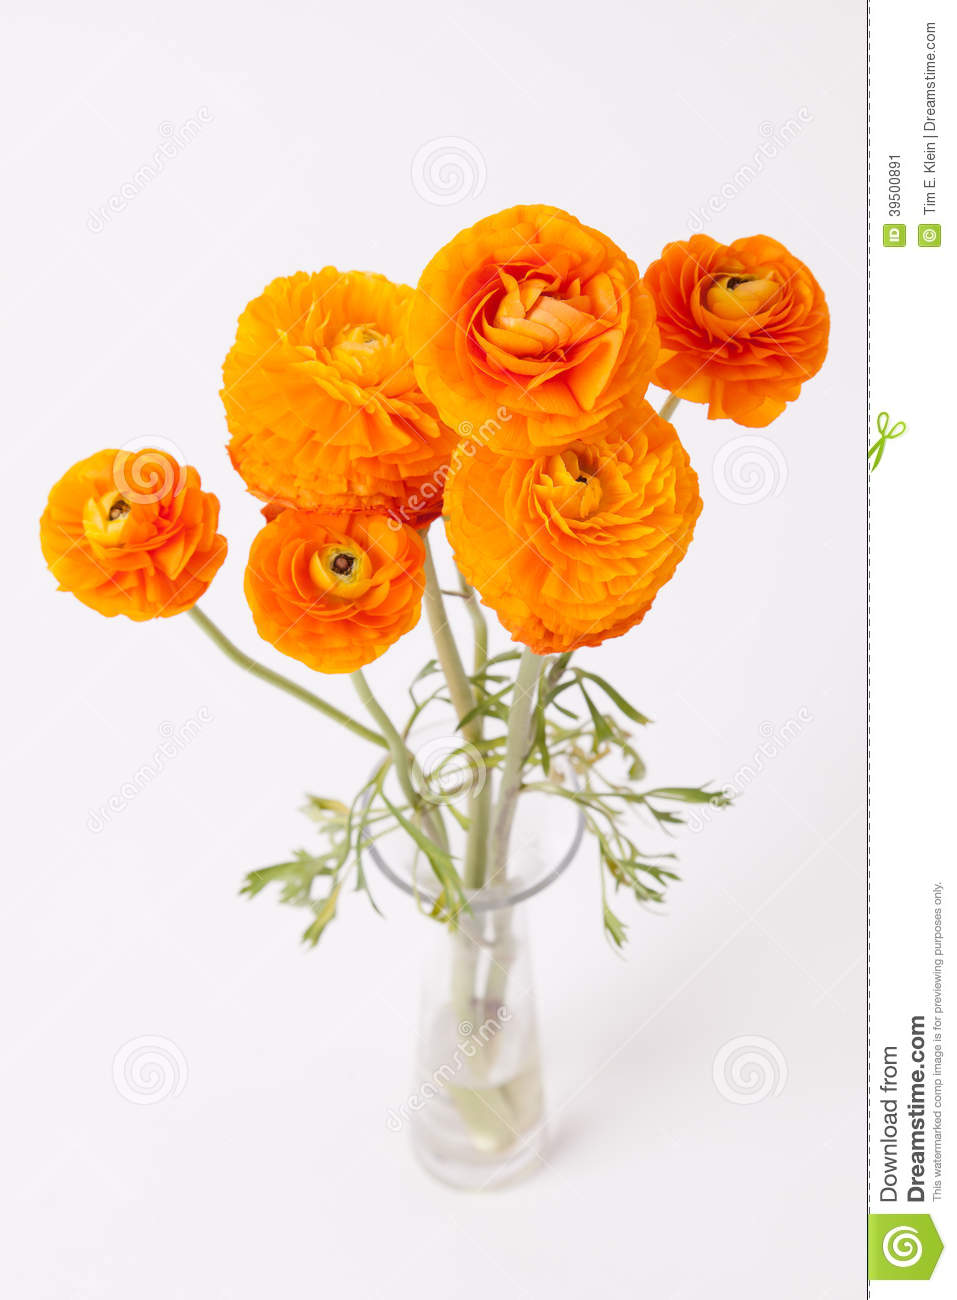 Orange Buttercups in glass vase on white